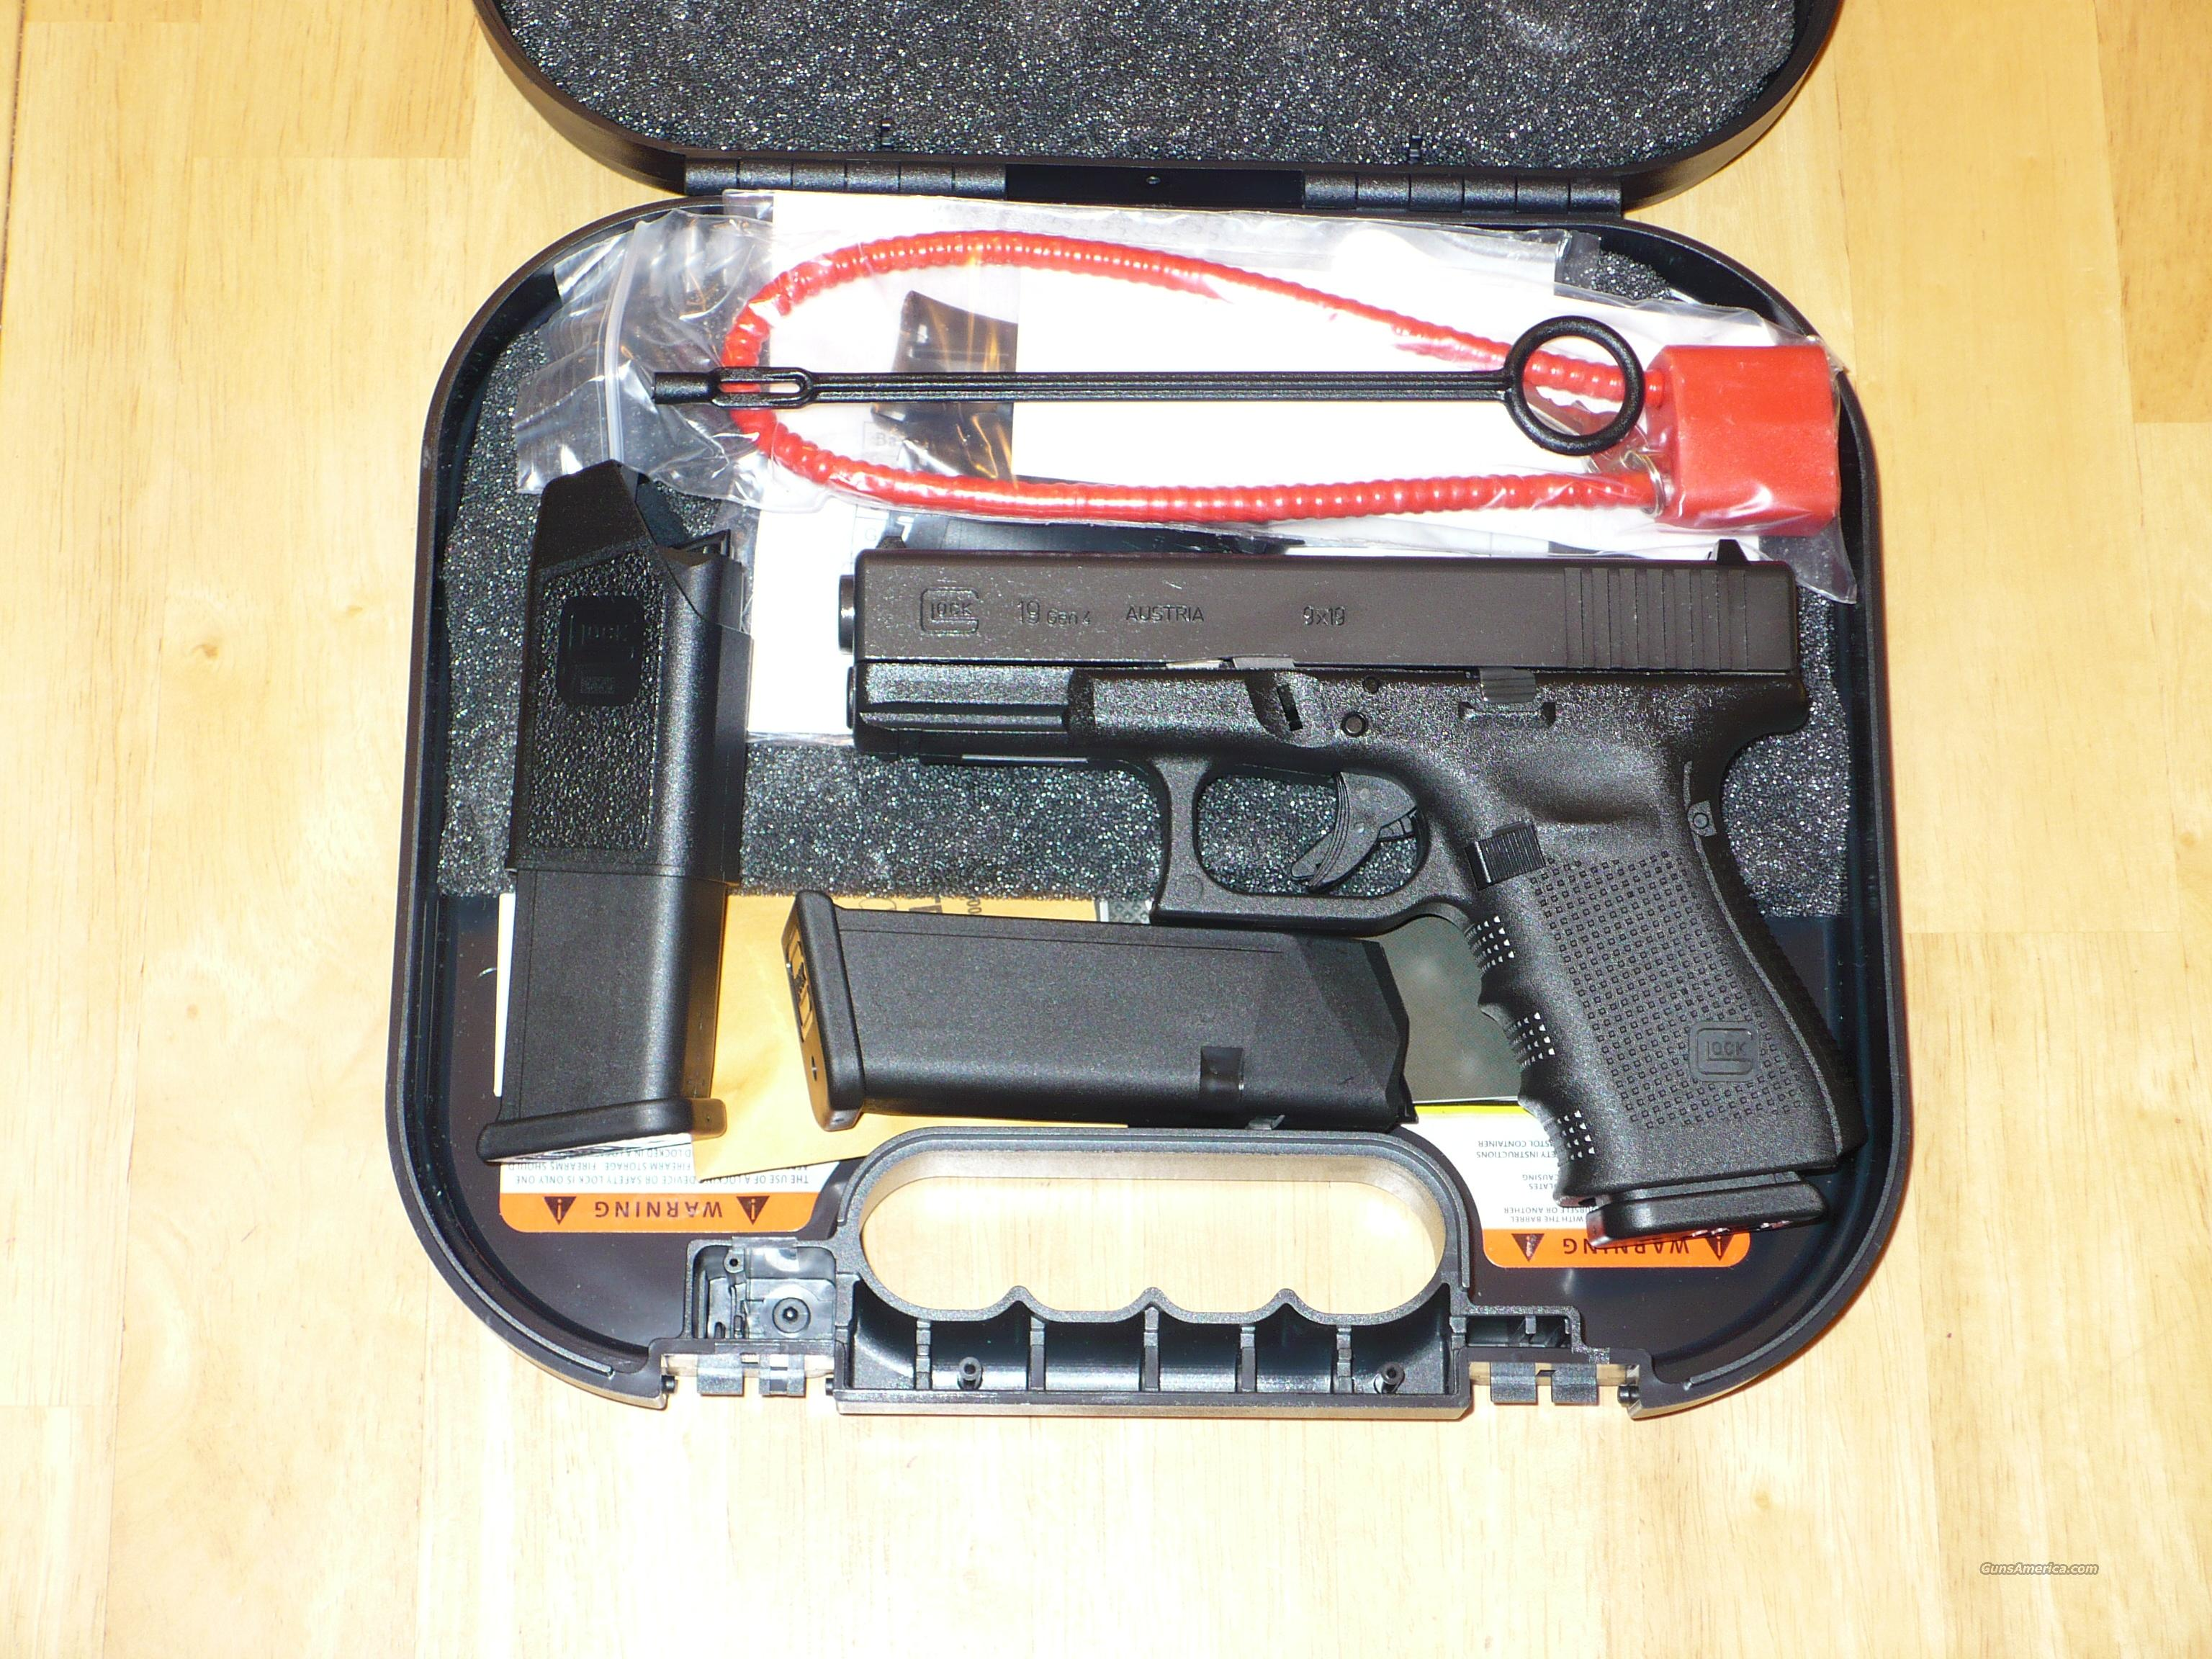 GLOCK 19 GEN 4 HI CAP 15 round capacity AS NEW UNFIRED COMES WITH 3 MAGS AND BOX AND PAPERWORK  Guns > Pistols > Glock Pistols > 19